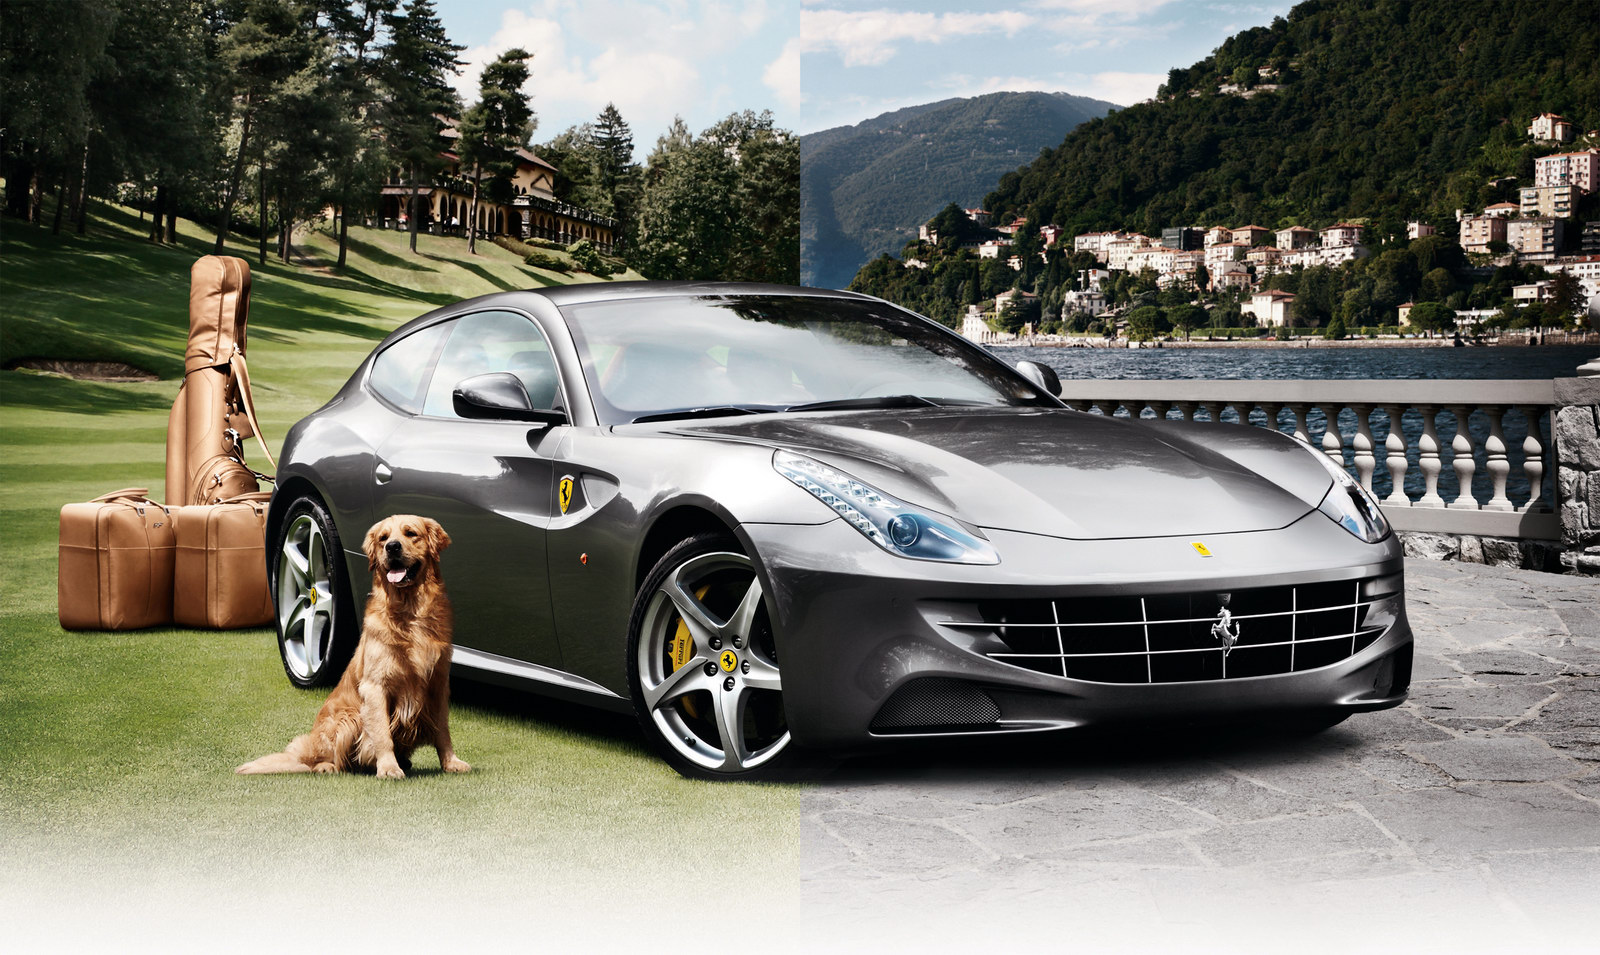 Ferr 3 Neiman Marcuss in its flaunting spree   2012 Ferrari FF